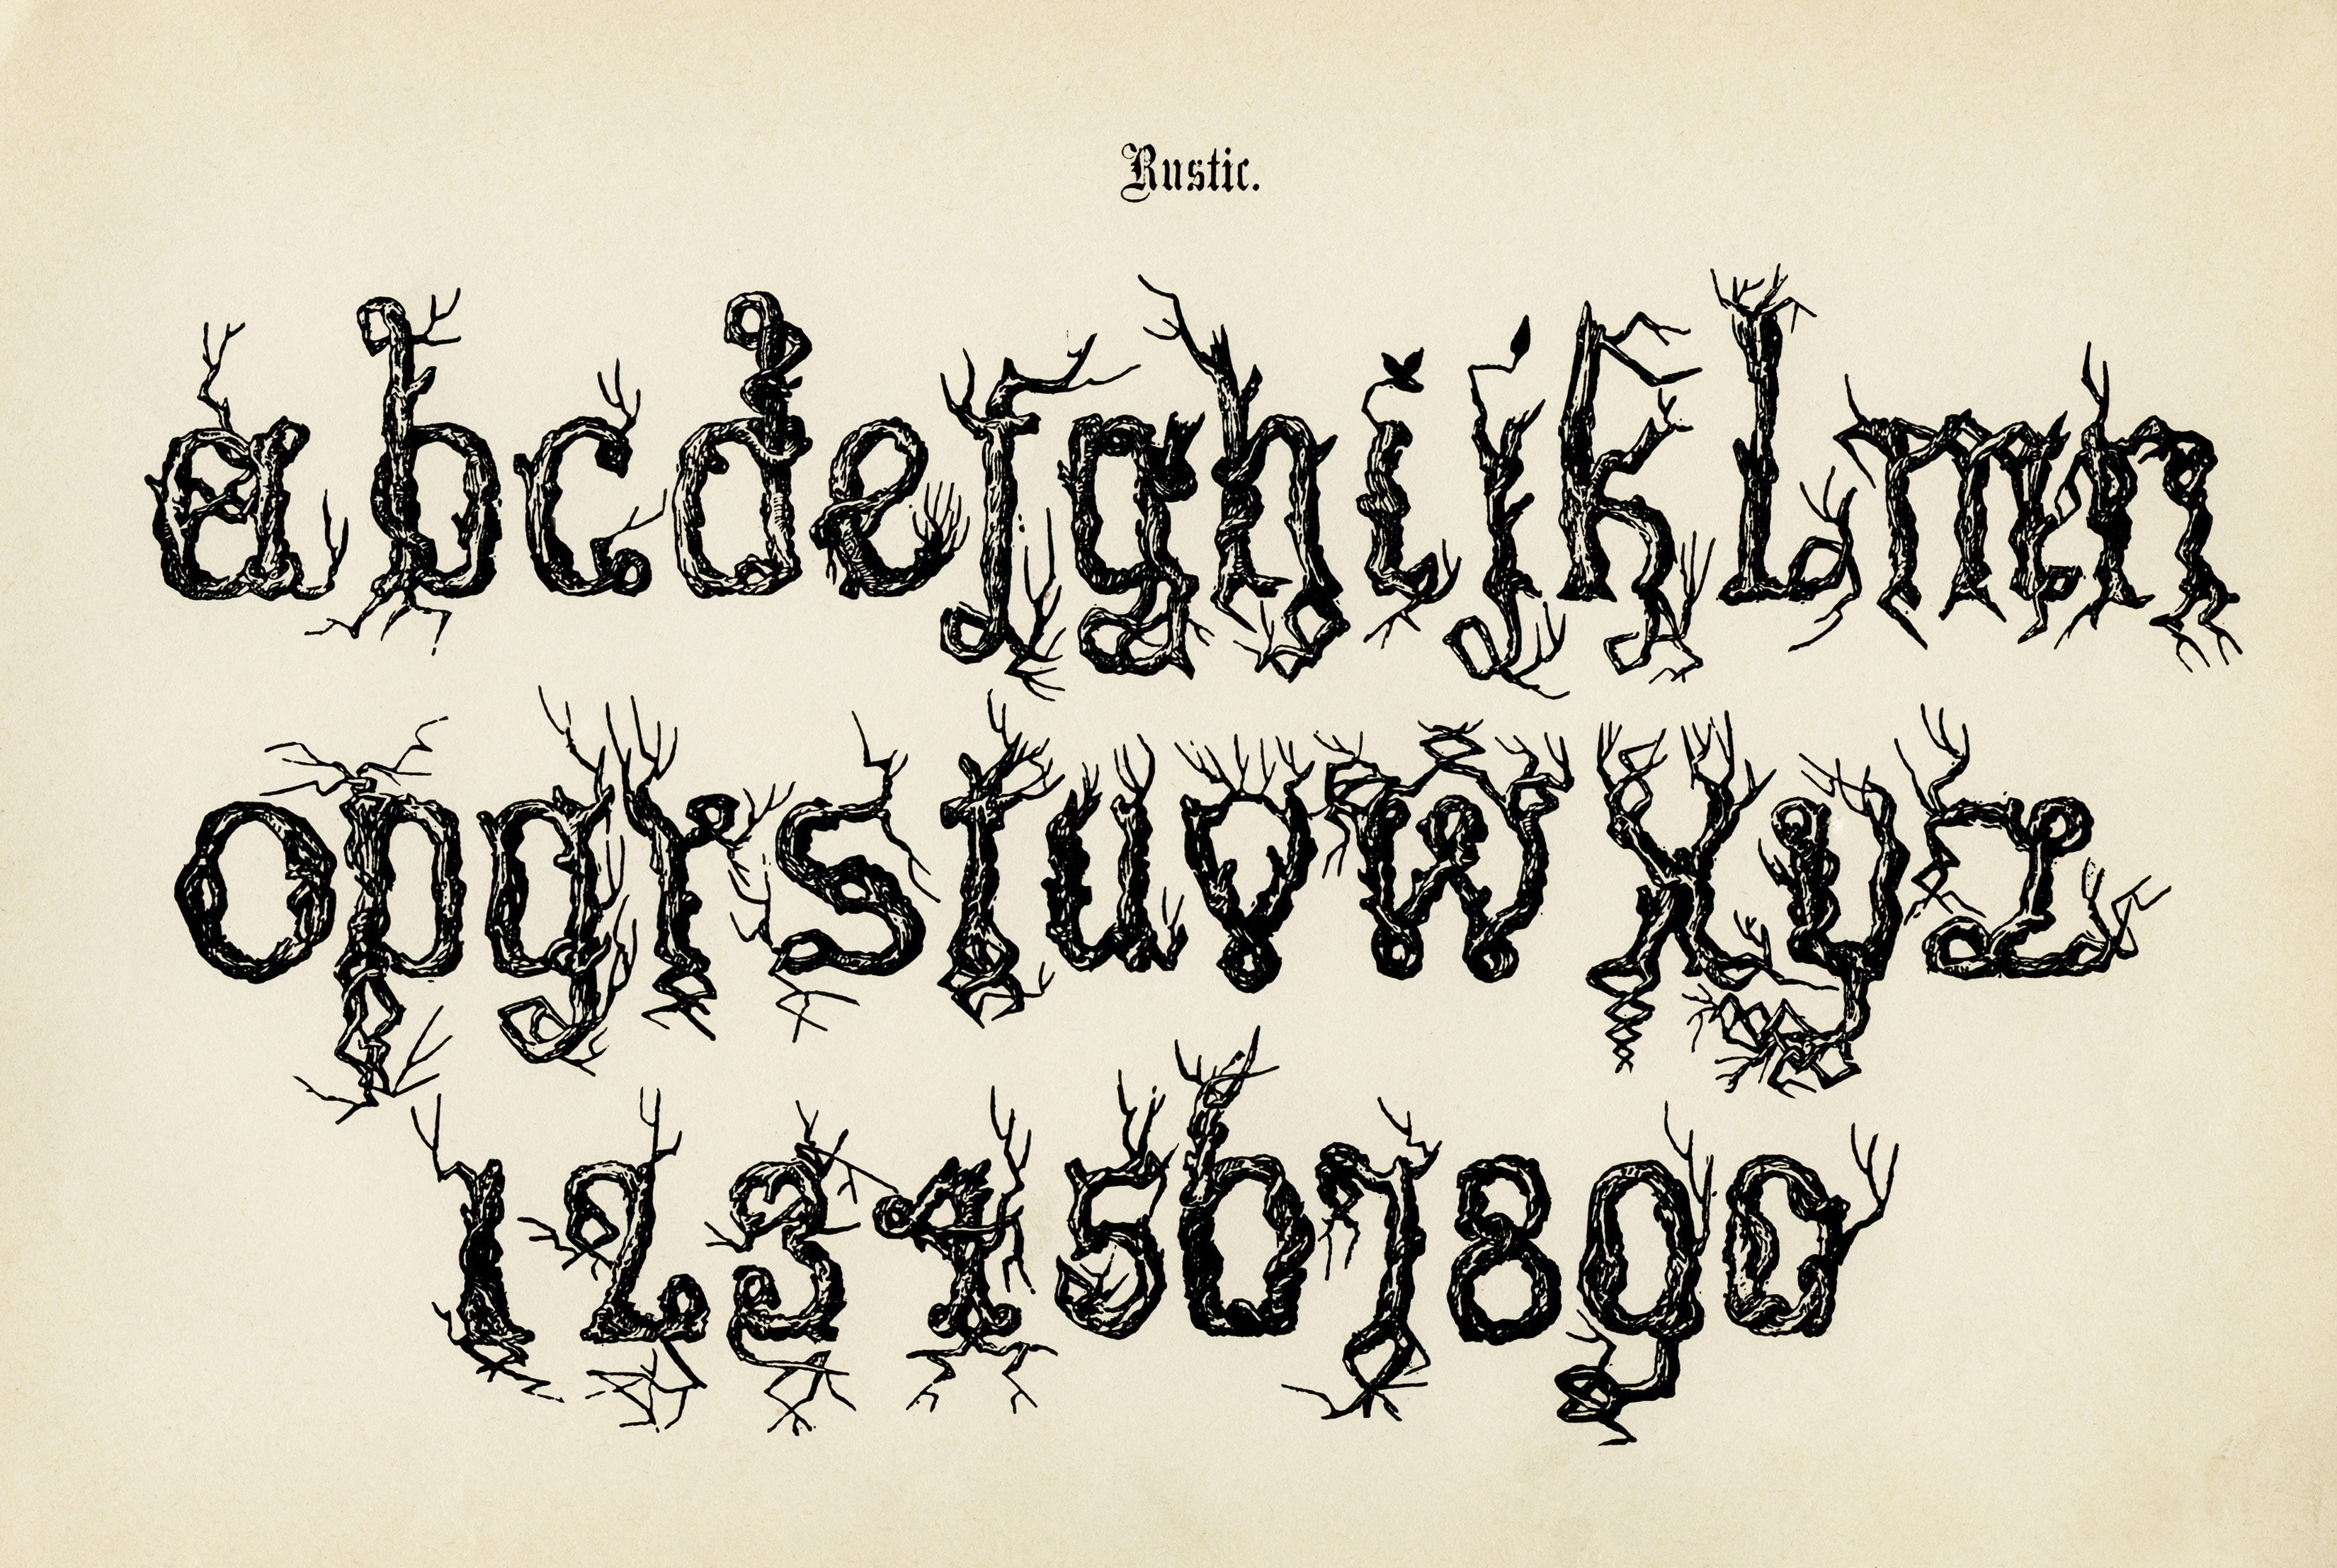 Rustic Alpha Spooky Lettering Free Vintage Graphic Antique Alphabet Old Letters And